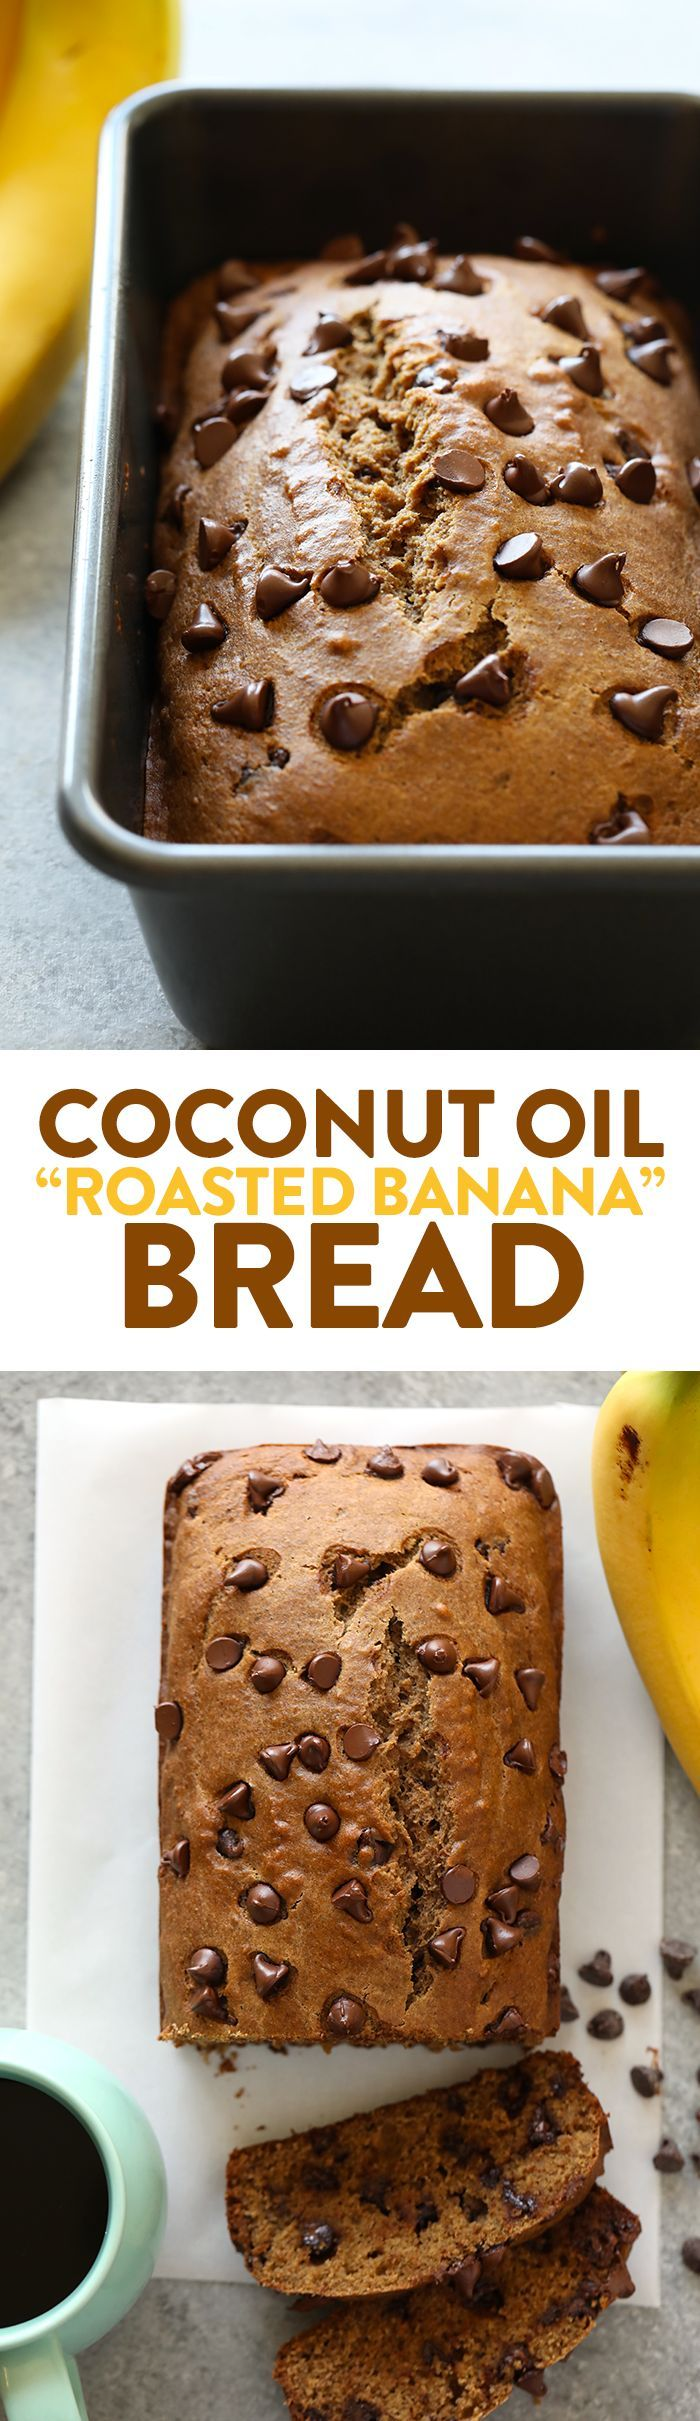 This Whole Wheat Coconut Oil Roasted Banana Bread is about to change you life. It's made with white whole wheat flour, roasted bananas, coconut oil, and dark chocolate chips.